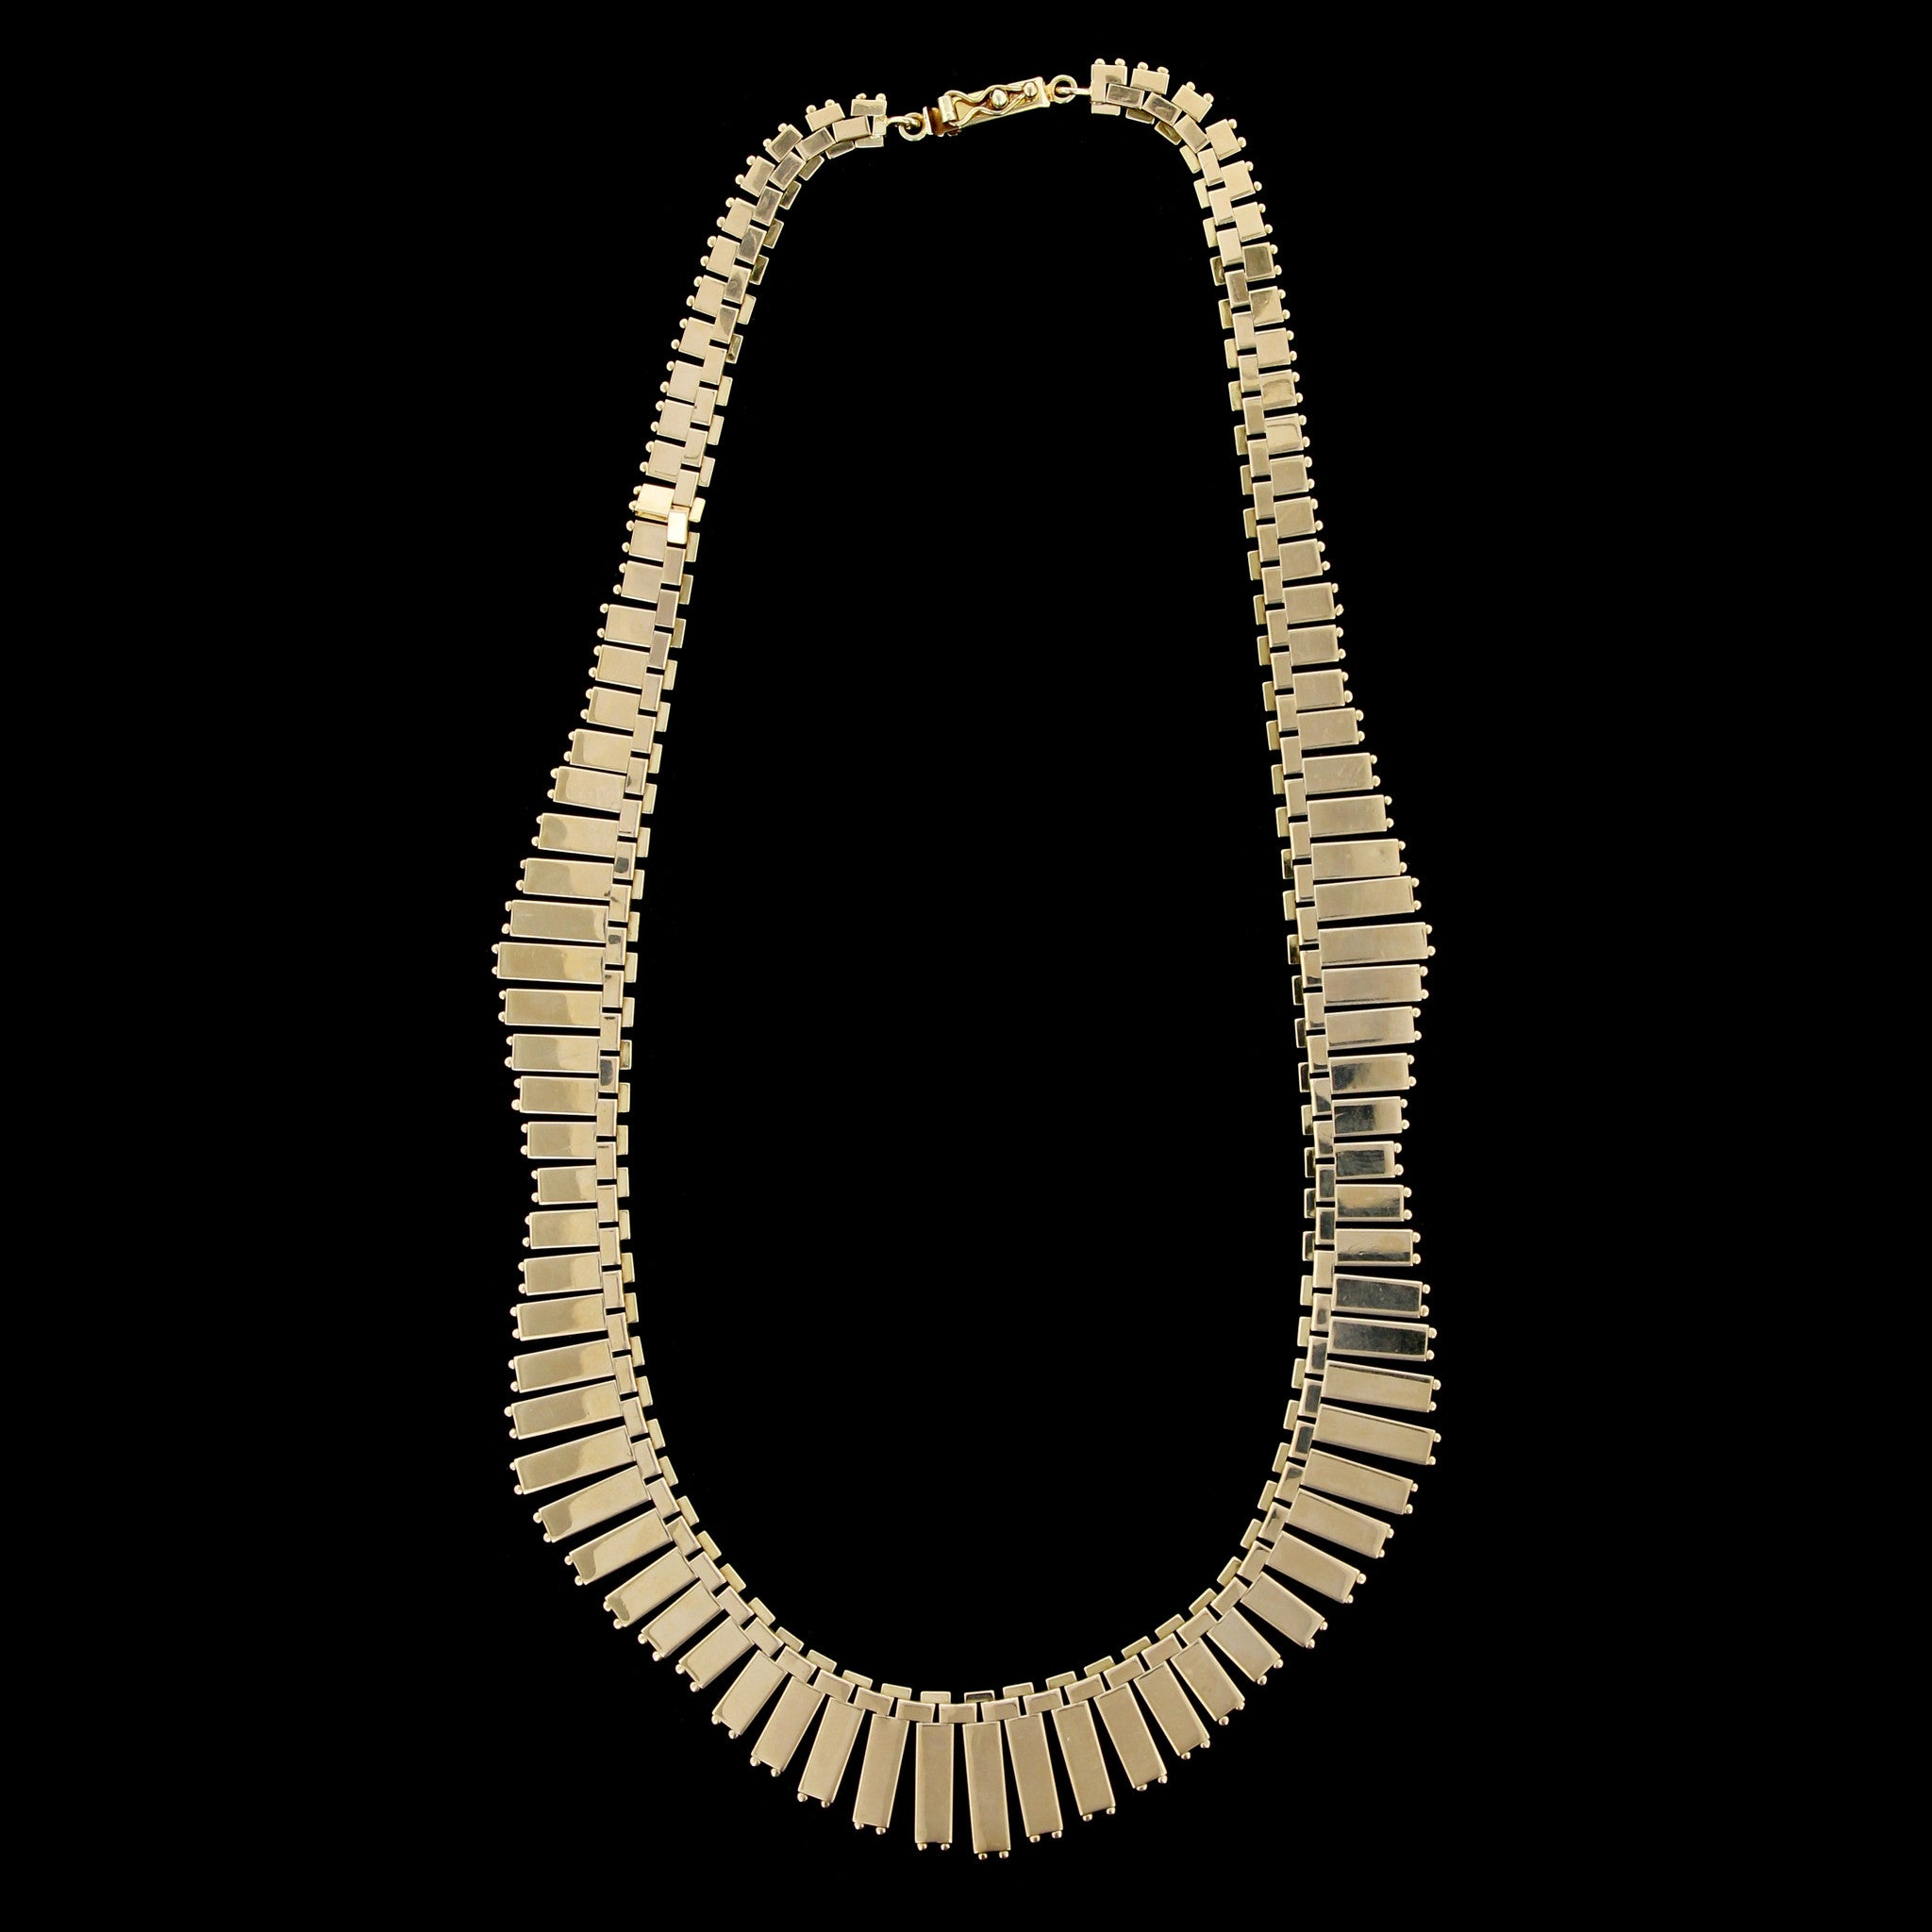 14K Yellow Gold Fringe Necklace